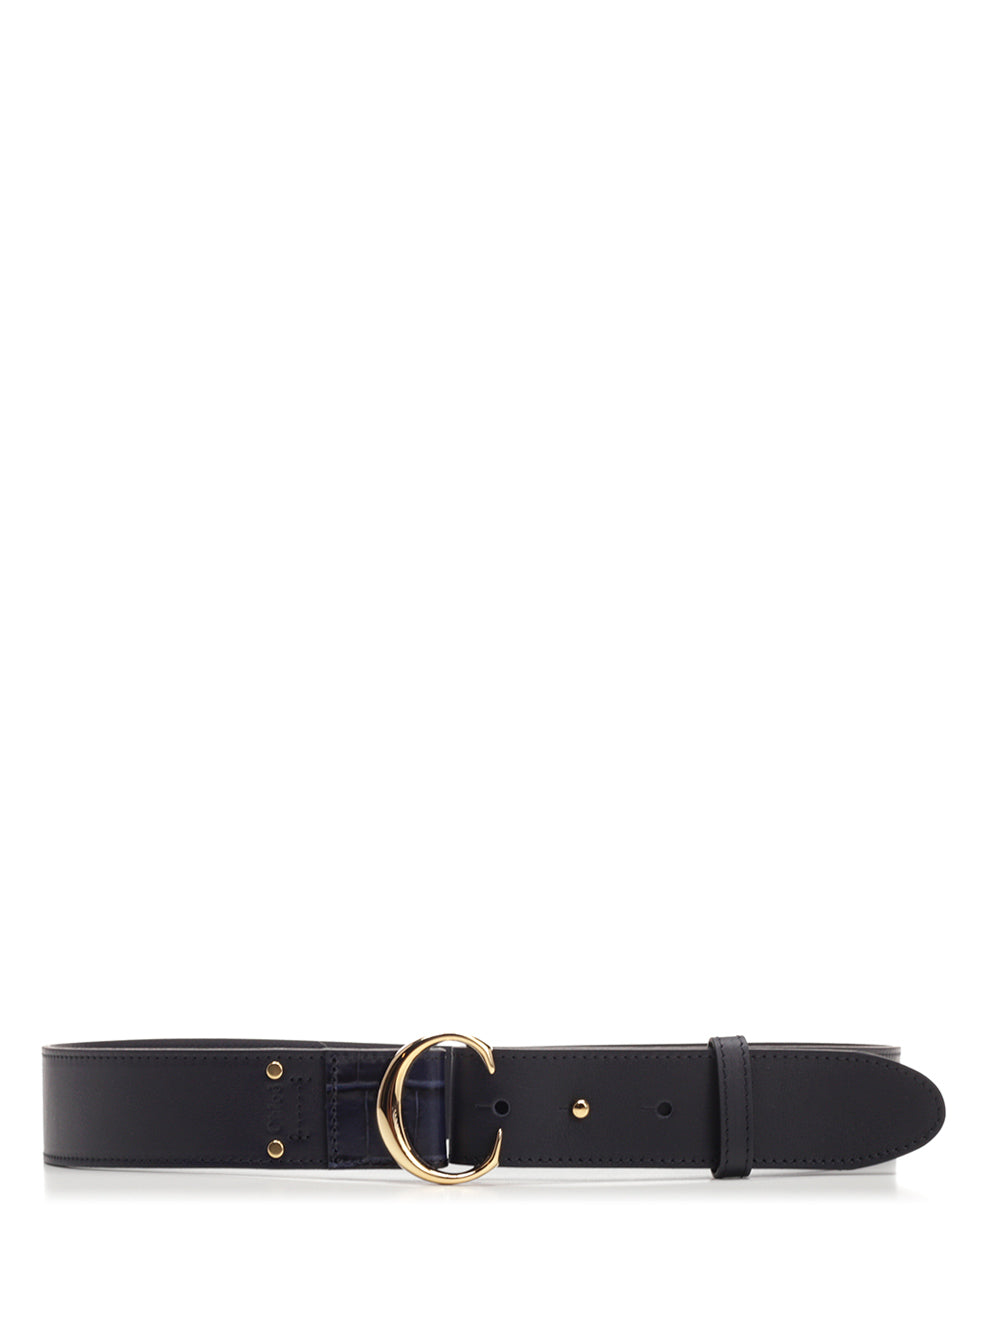 Chloé Belts CHLOÉ C LOGO BUCKLE BELT